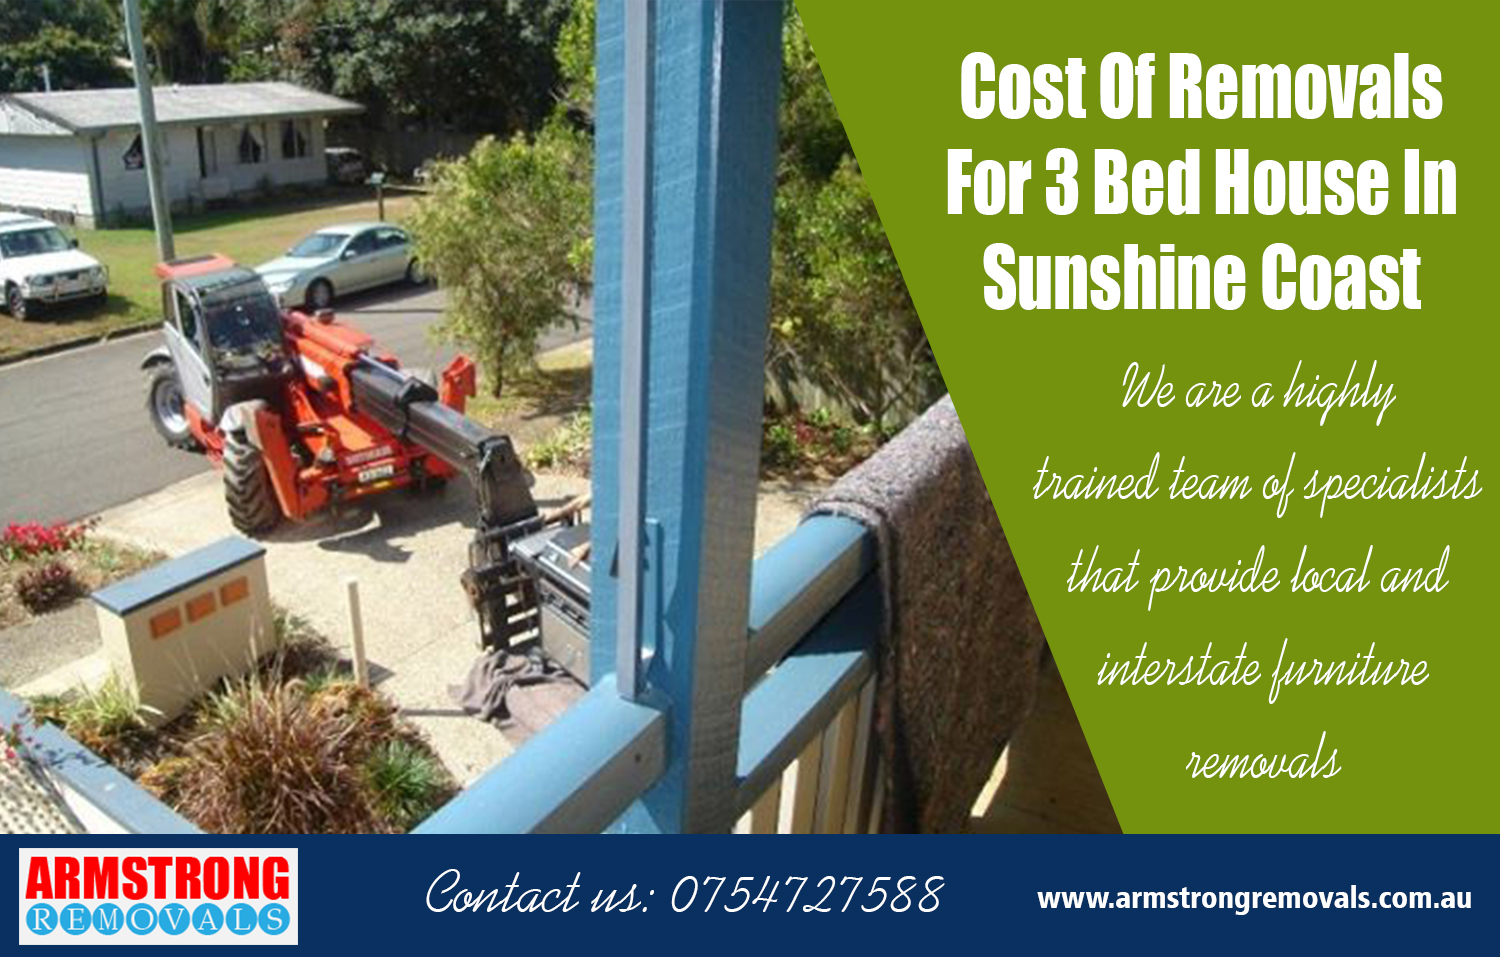 Cost Of Removals For 3 Bed House In Sunshine Coast